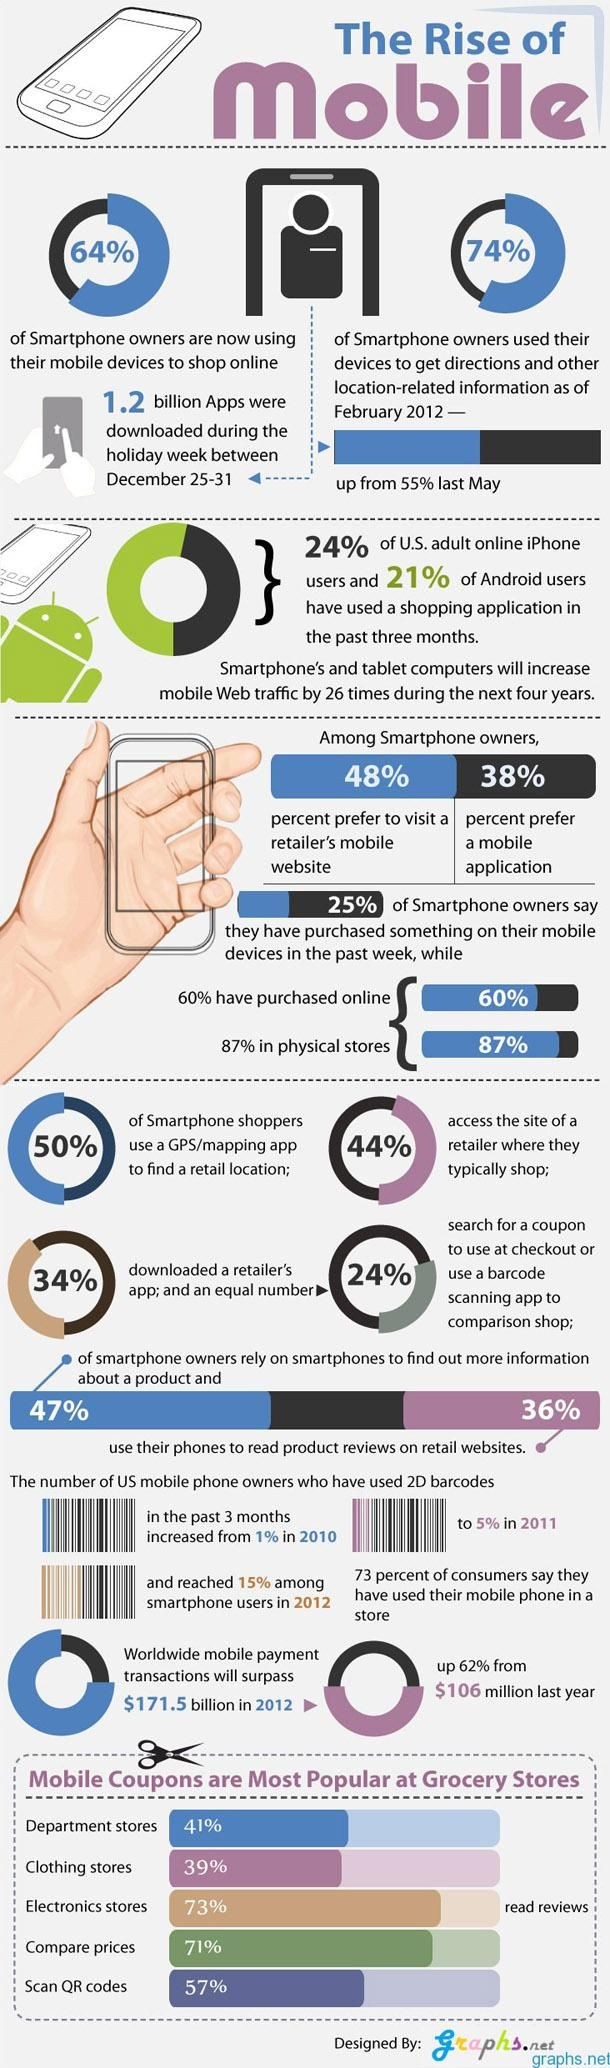 Popularity of Mobile Infographic from Pinterest